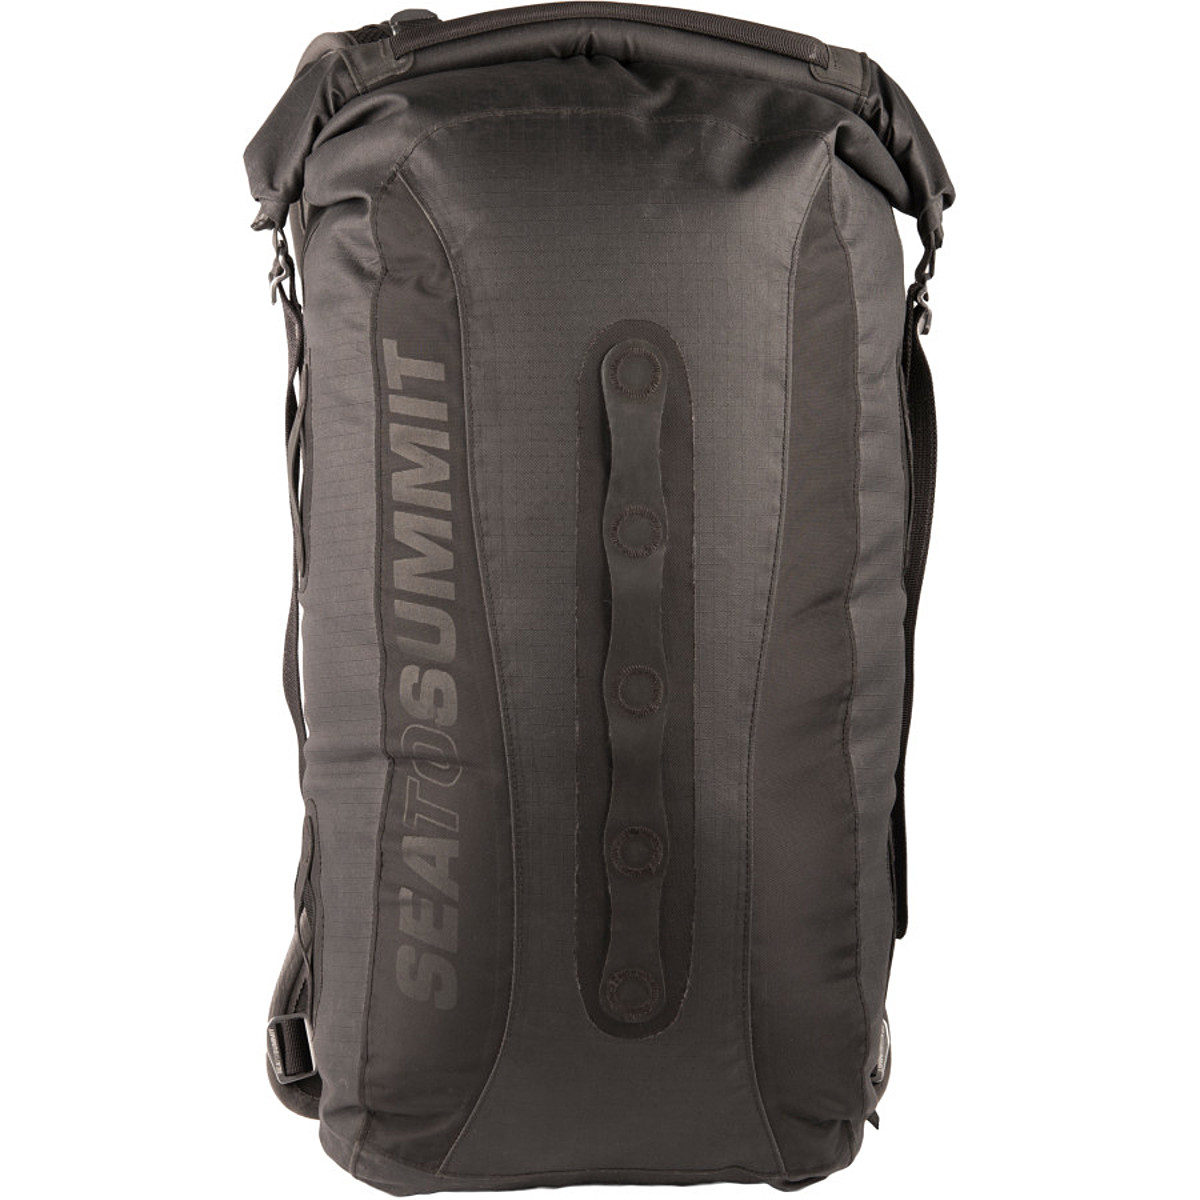 Sea to Summit Carve 24L DryPack